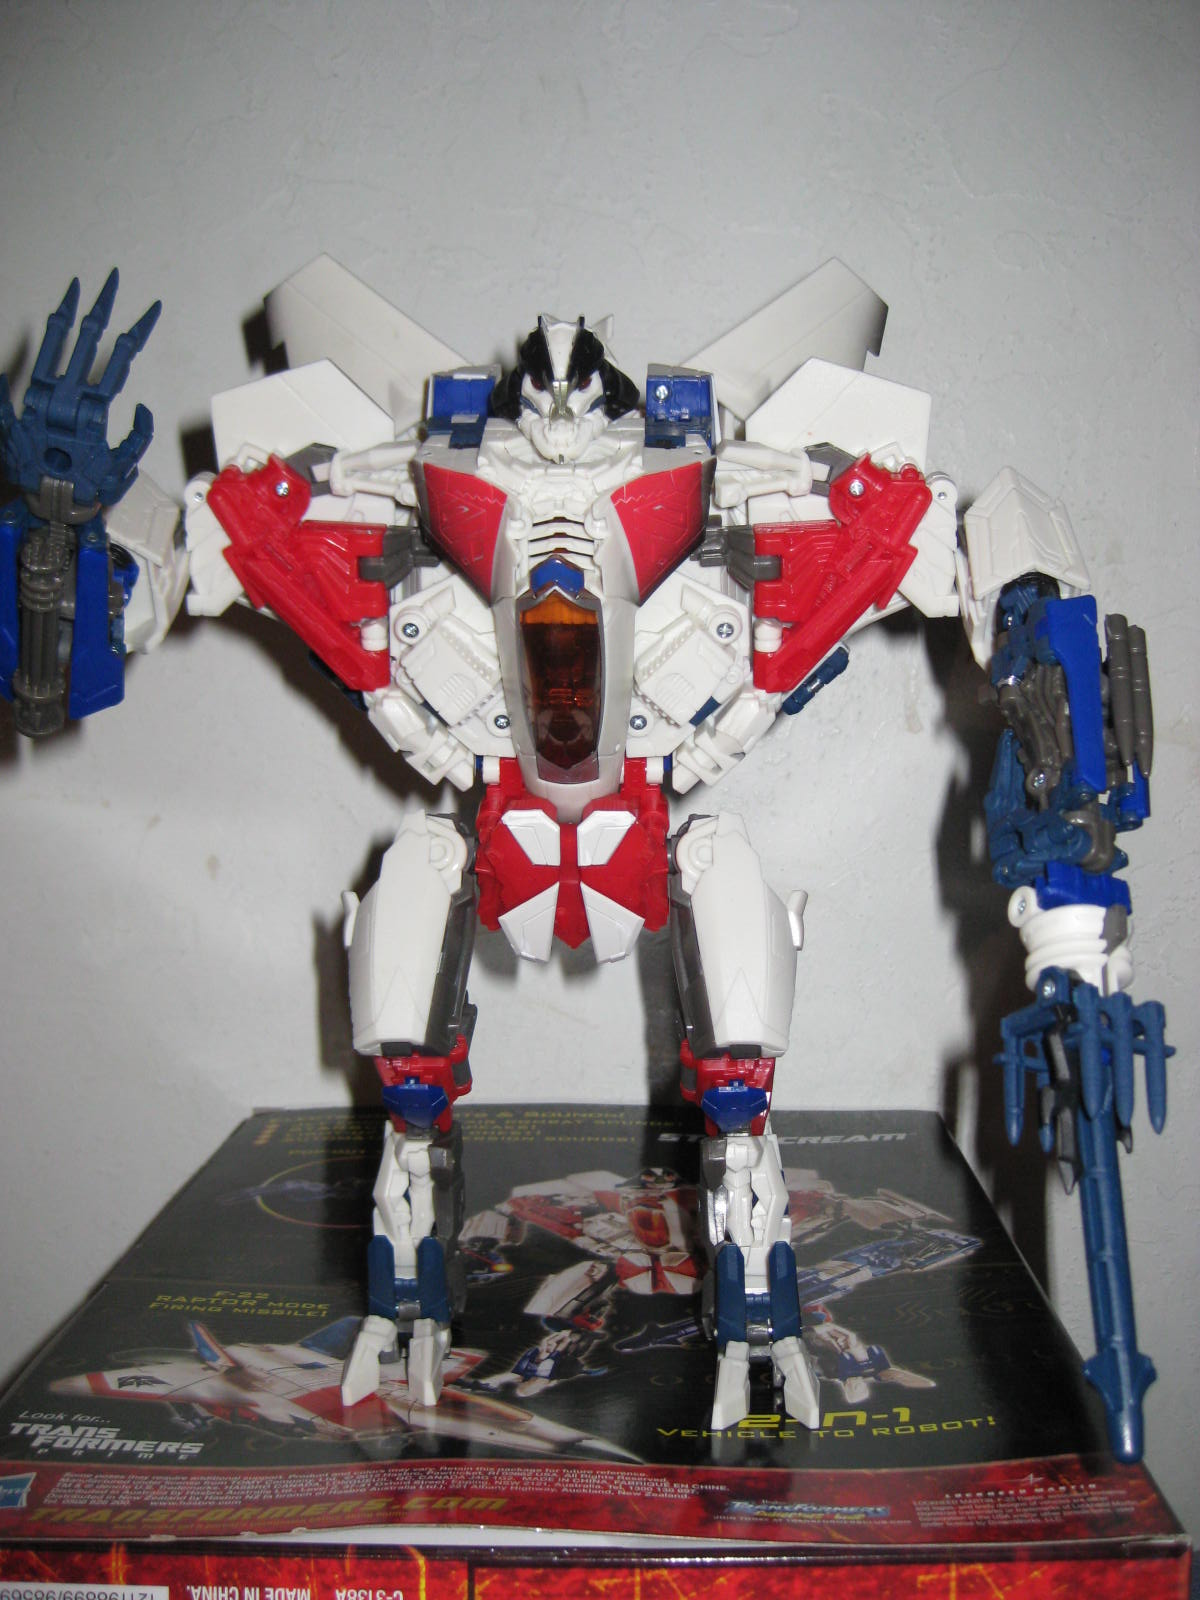 27323713d1349160812-hand-images-gdo-leader-ironhide-starscream-img_7946